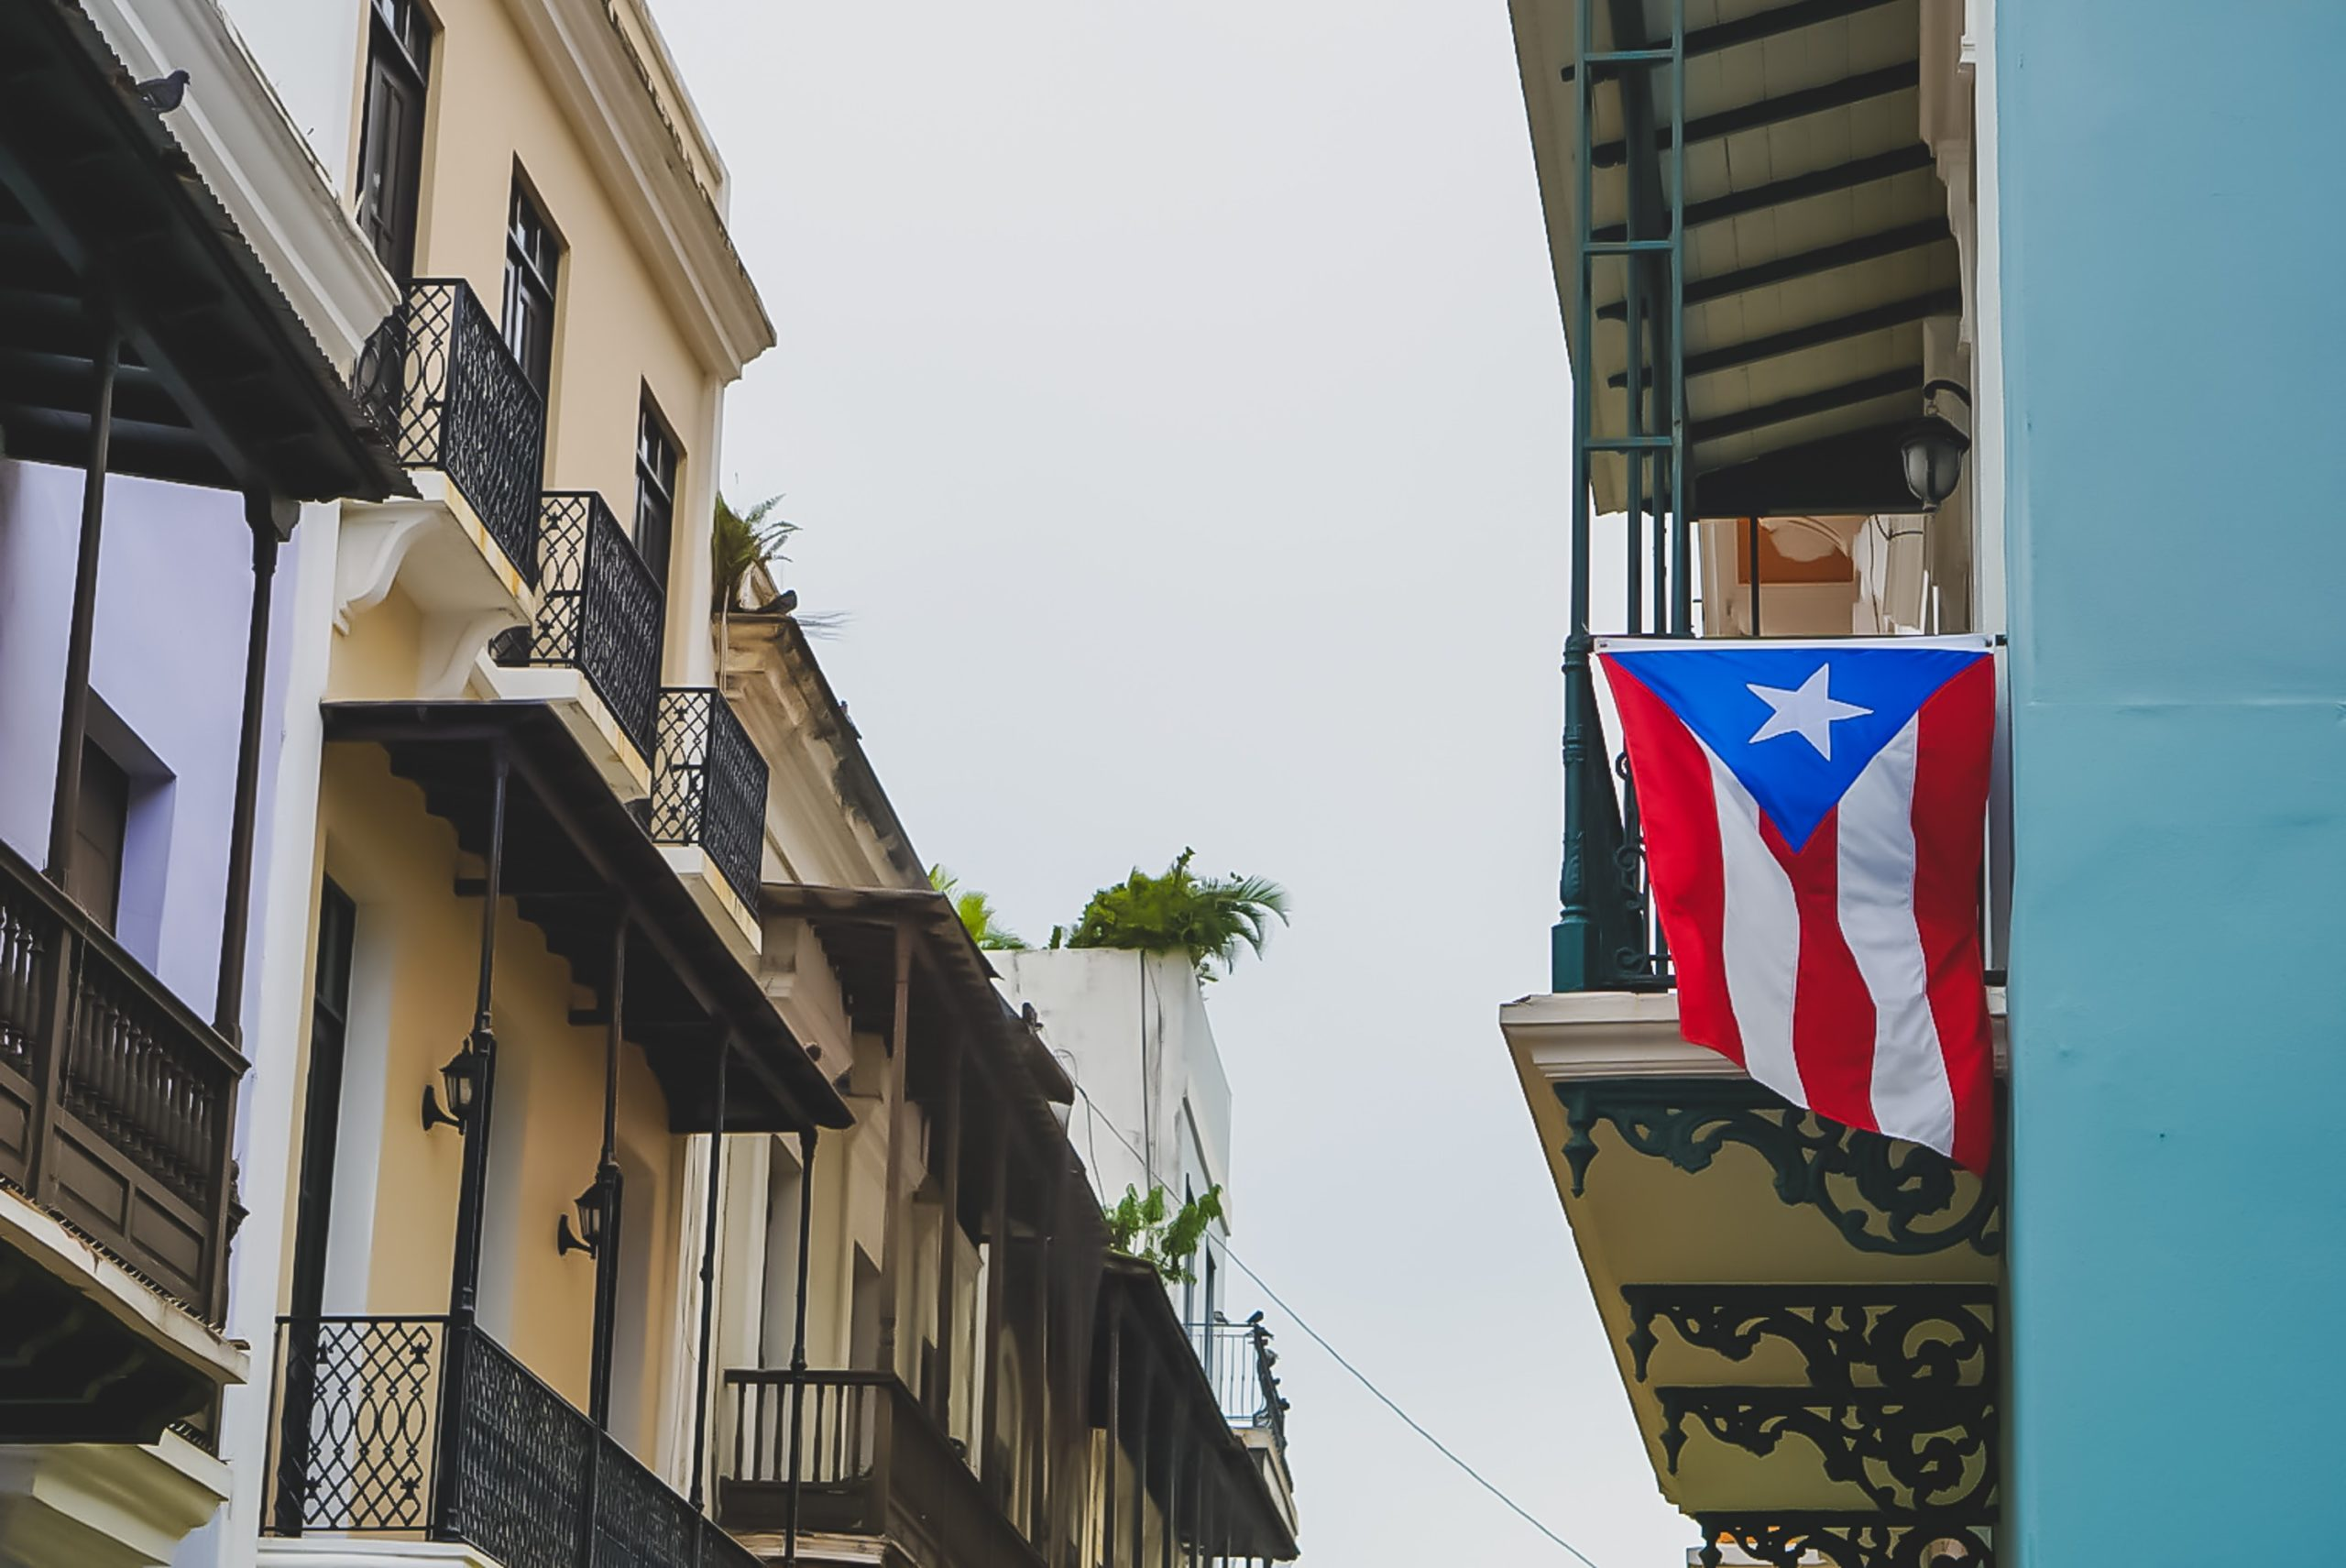 Puerto Rico has a once-in-a-lifetime chance to build a clean energy grid – but FEMA plans to spend $9.4 billion on fossil fuel infrastructure instead